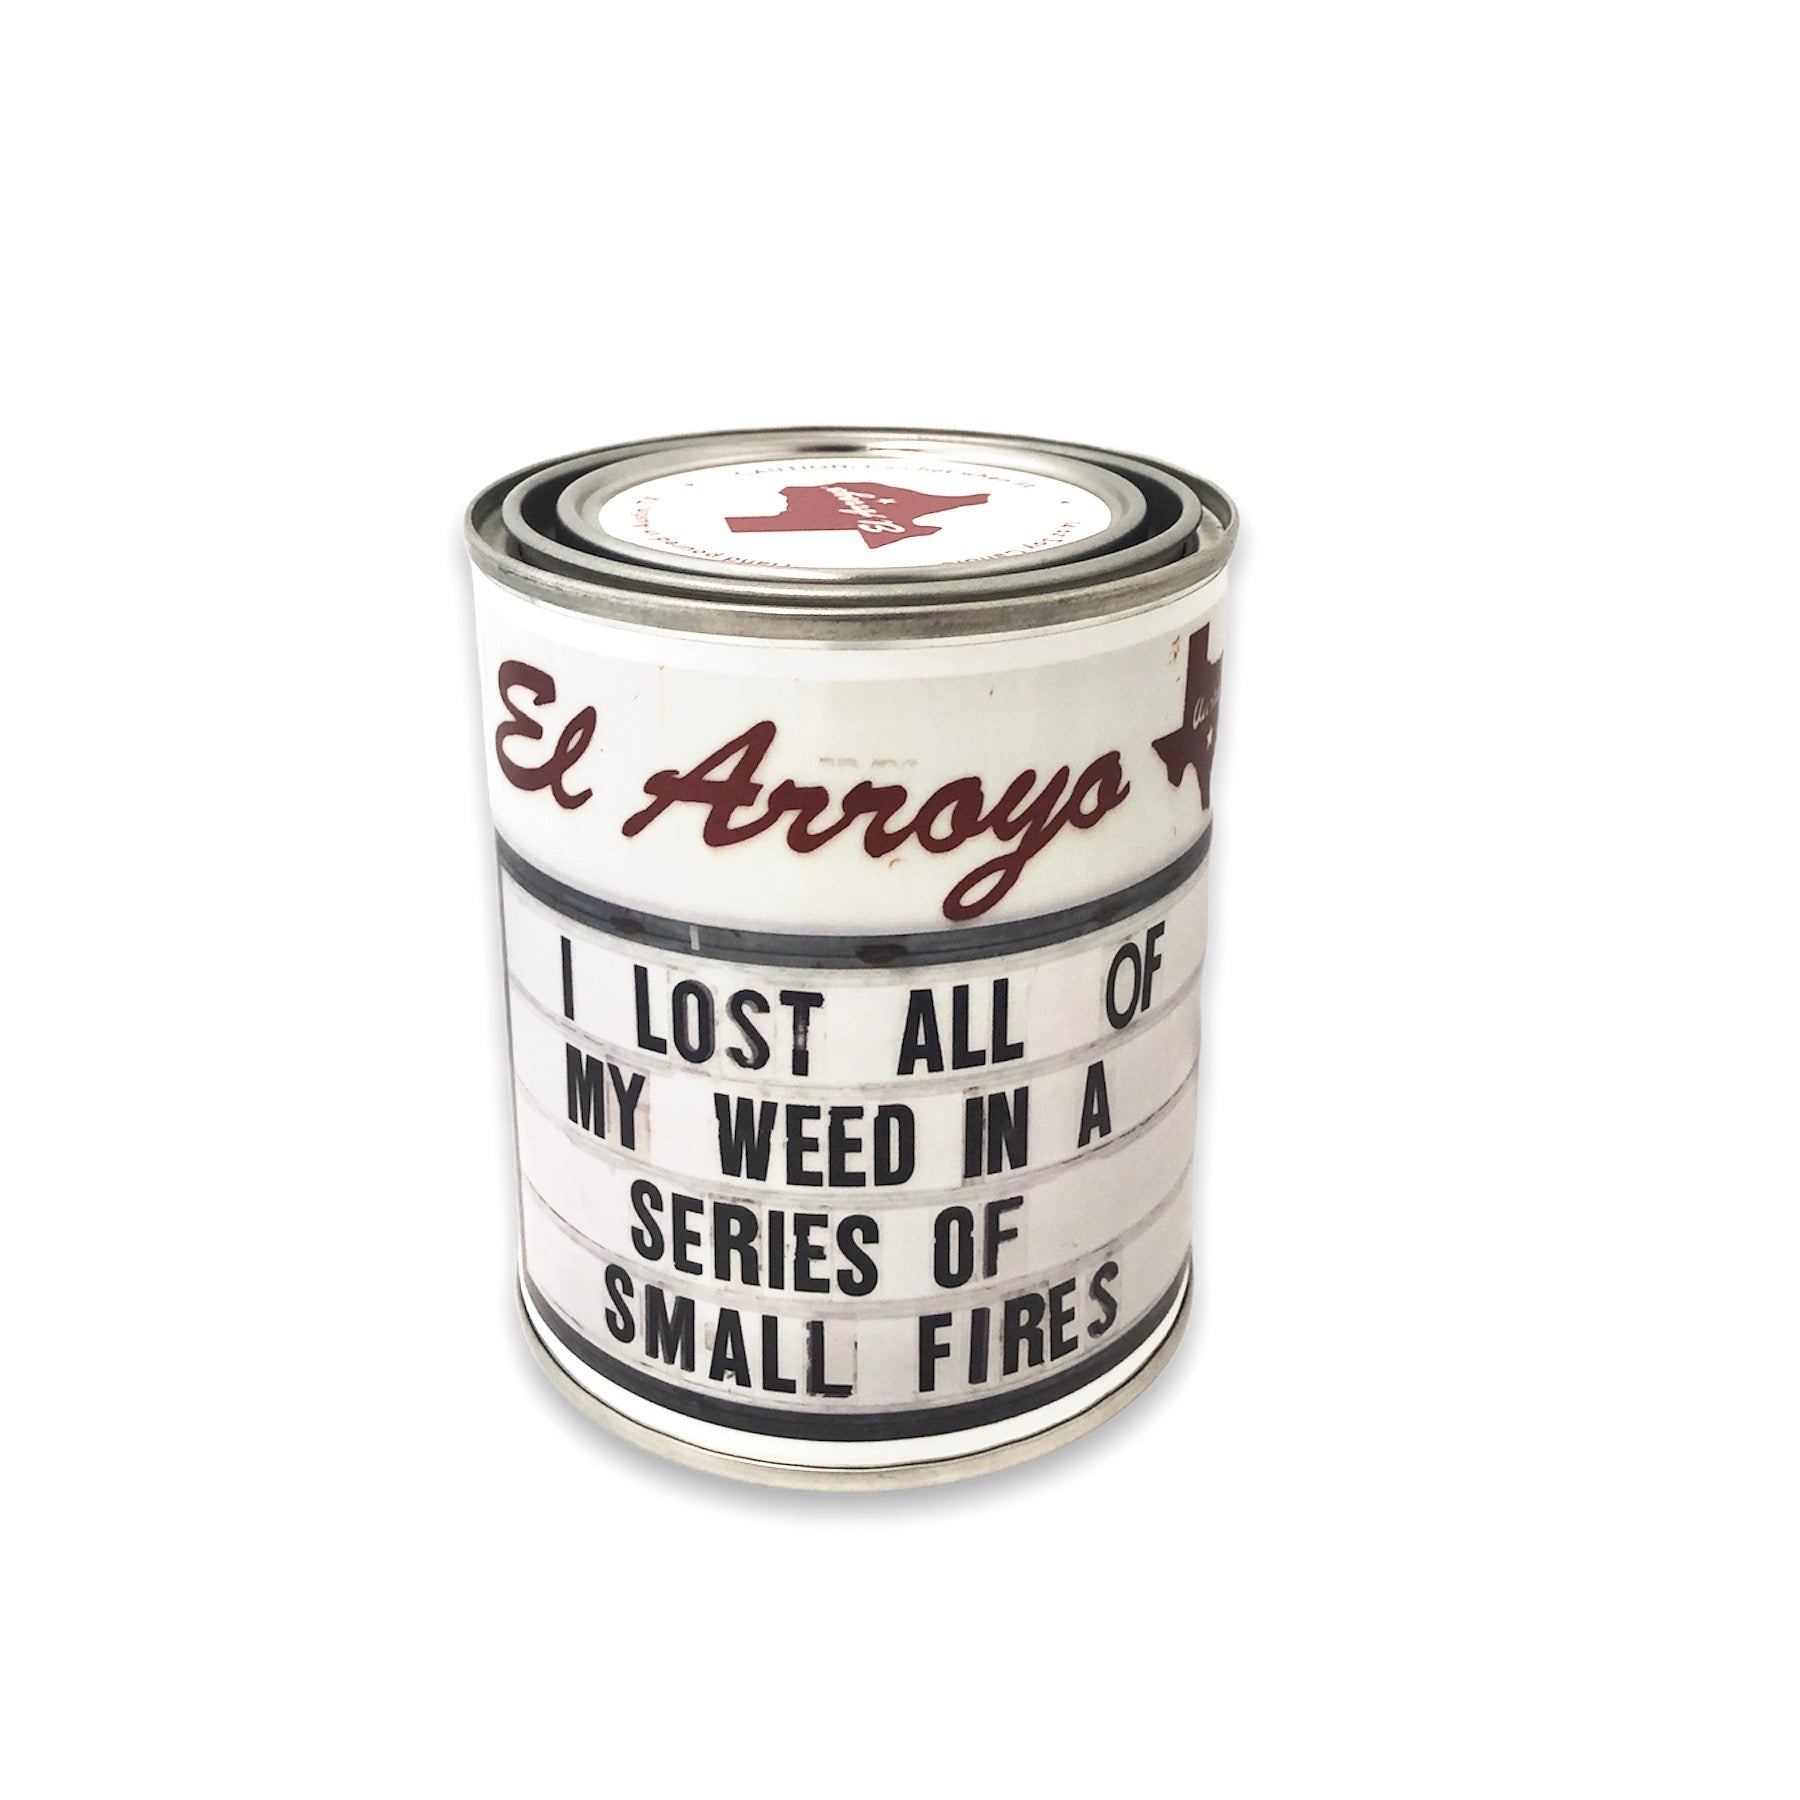 14 oz Paint Can Candle - Small Fires